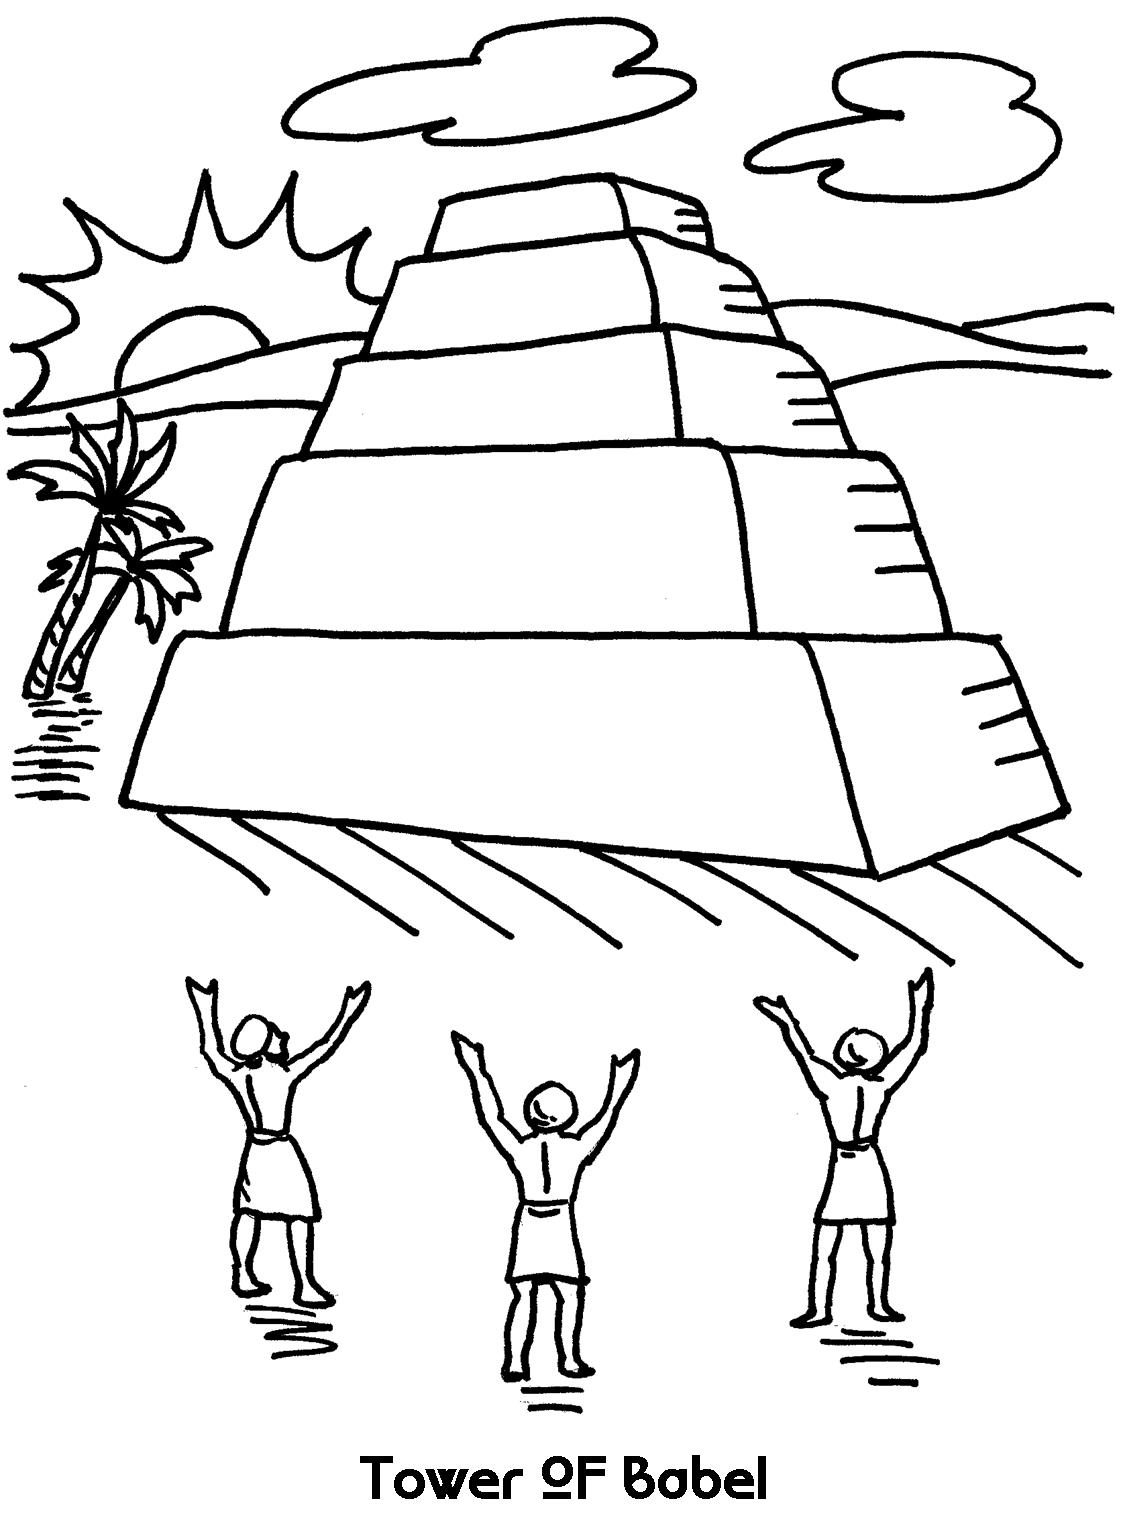 coloring tower of babel for kids tower of babel coloring page homeschool bible learning of coloring tower for kids babel